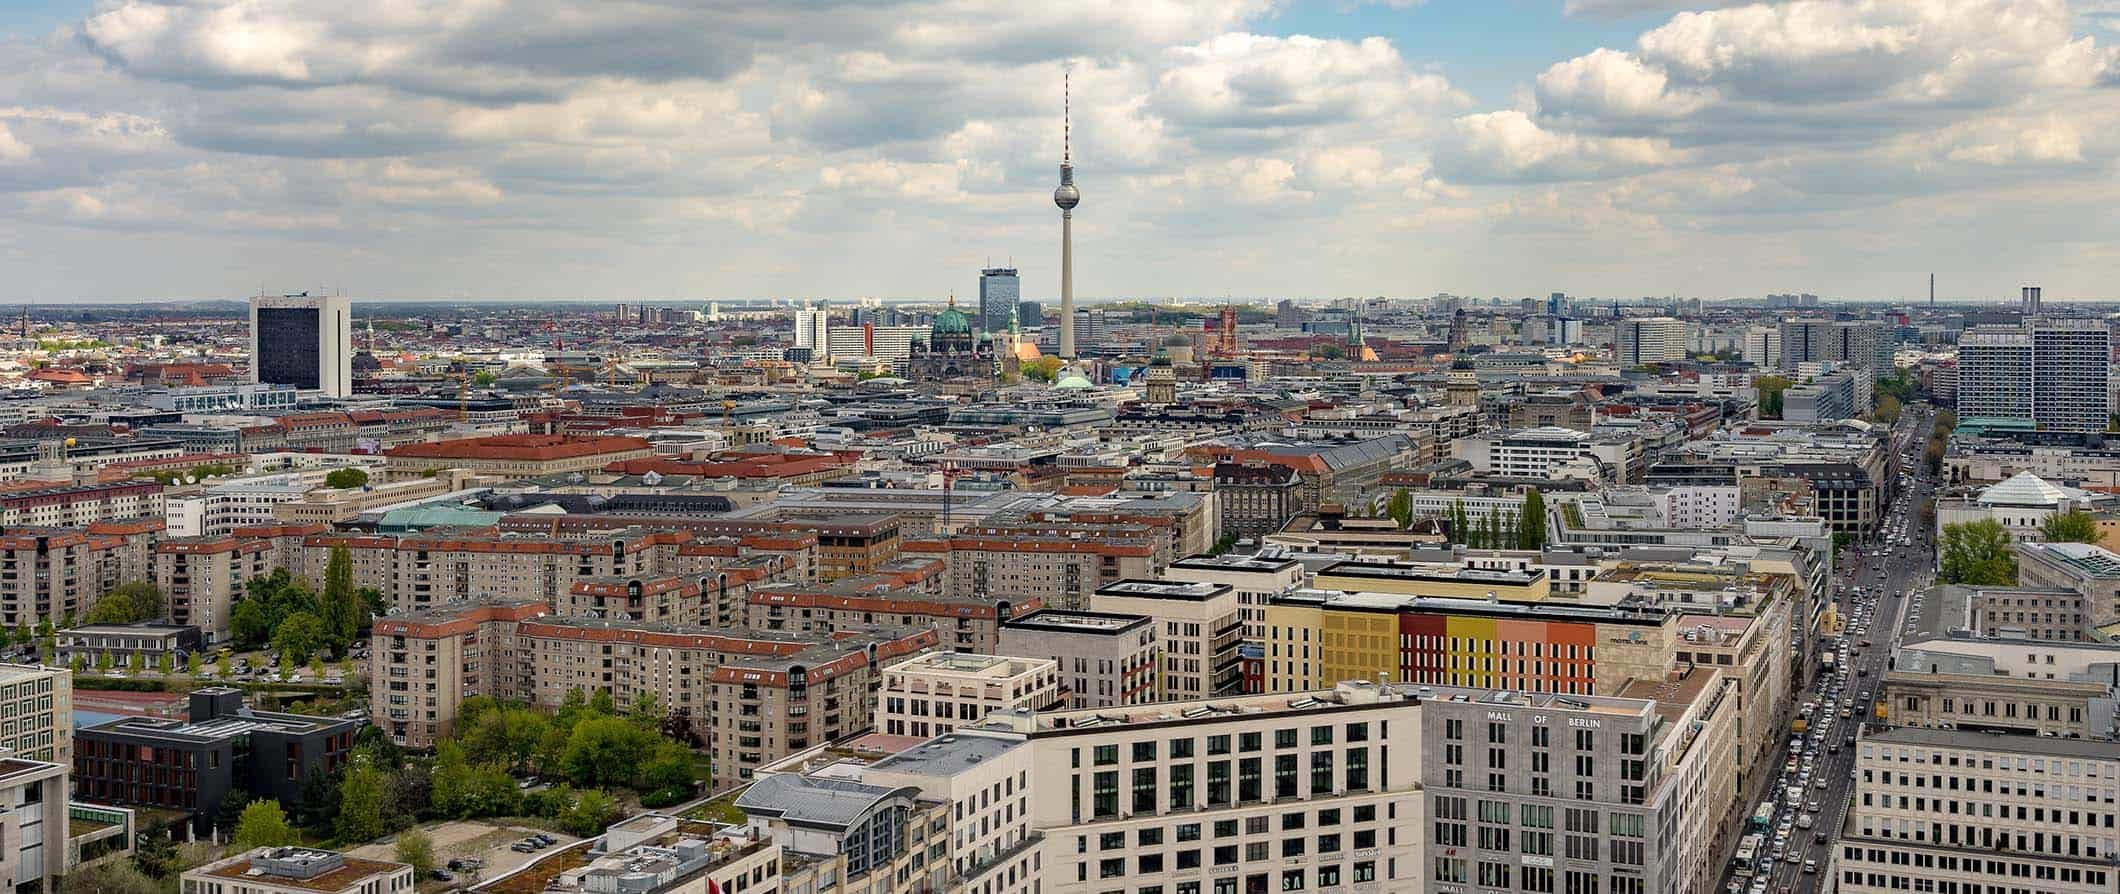 view of Berlin's rooftops and the TV tower